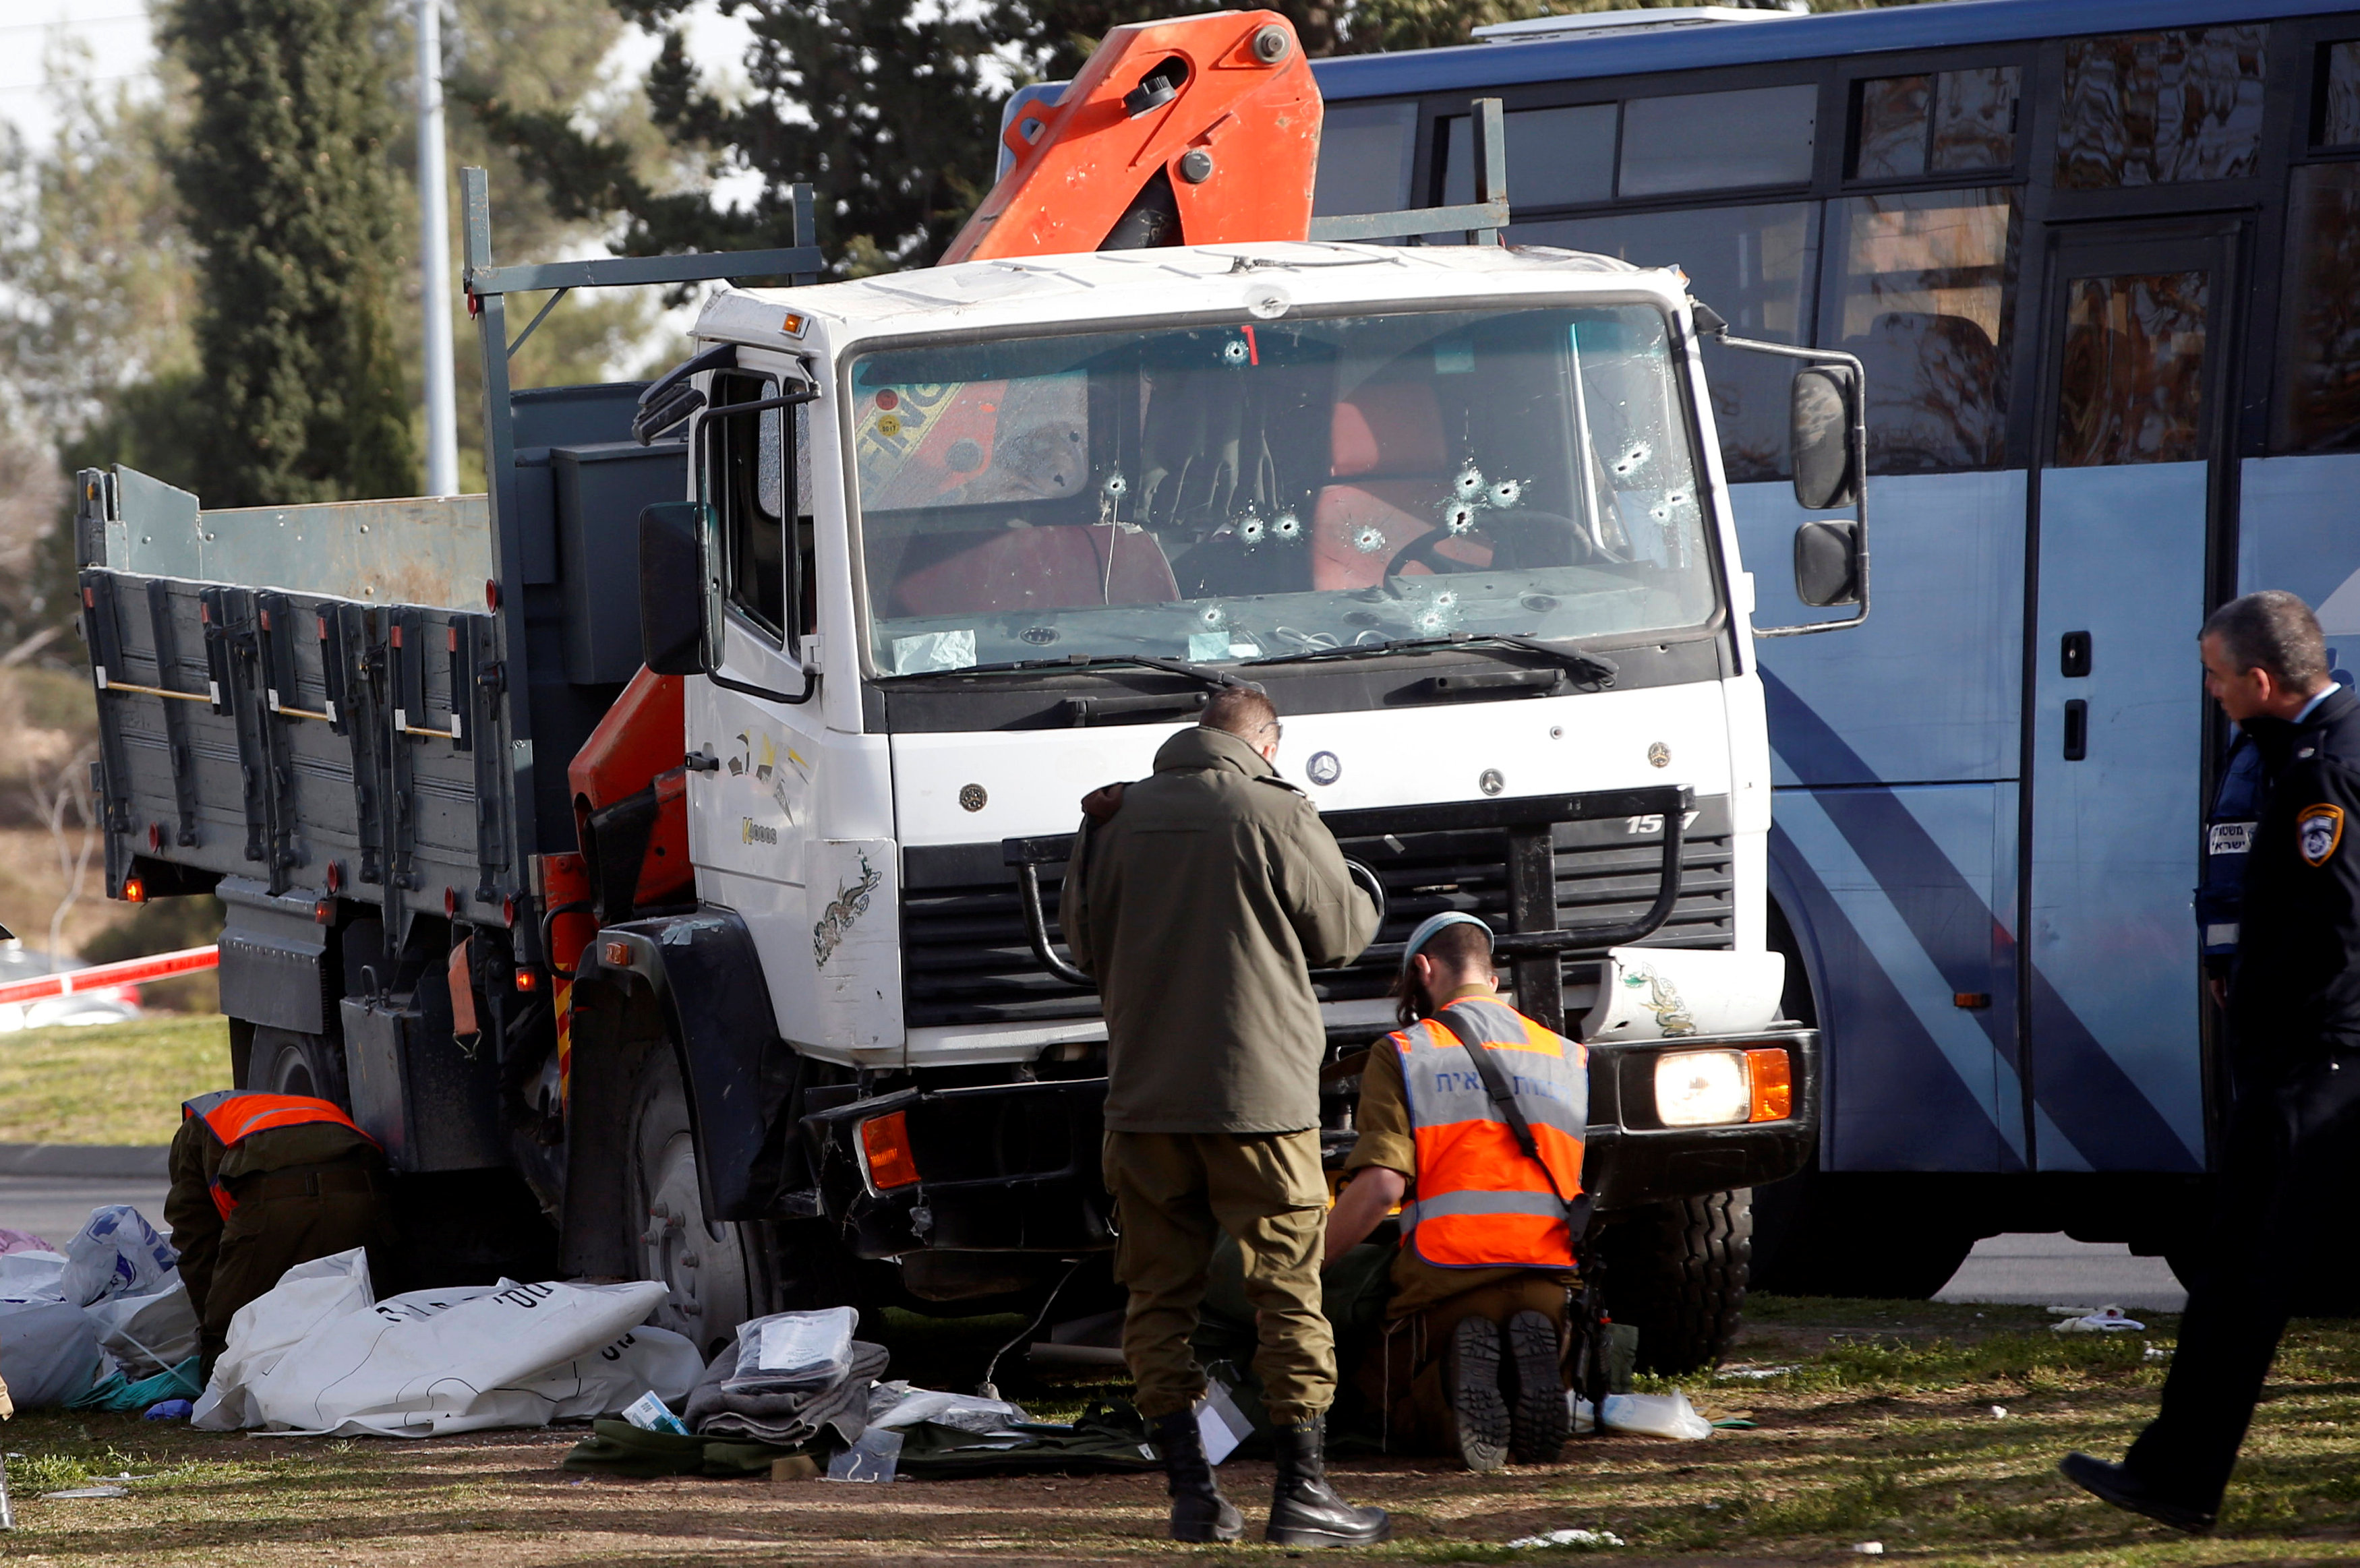 Israeli soldiers work at the scene where police said a Palestinian rammed his truck into a group of Israeli soldiers on a popular promenade in Jerusalem